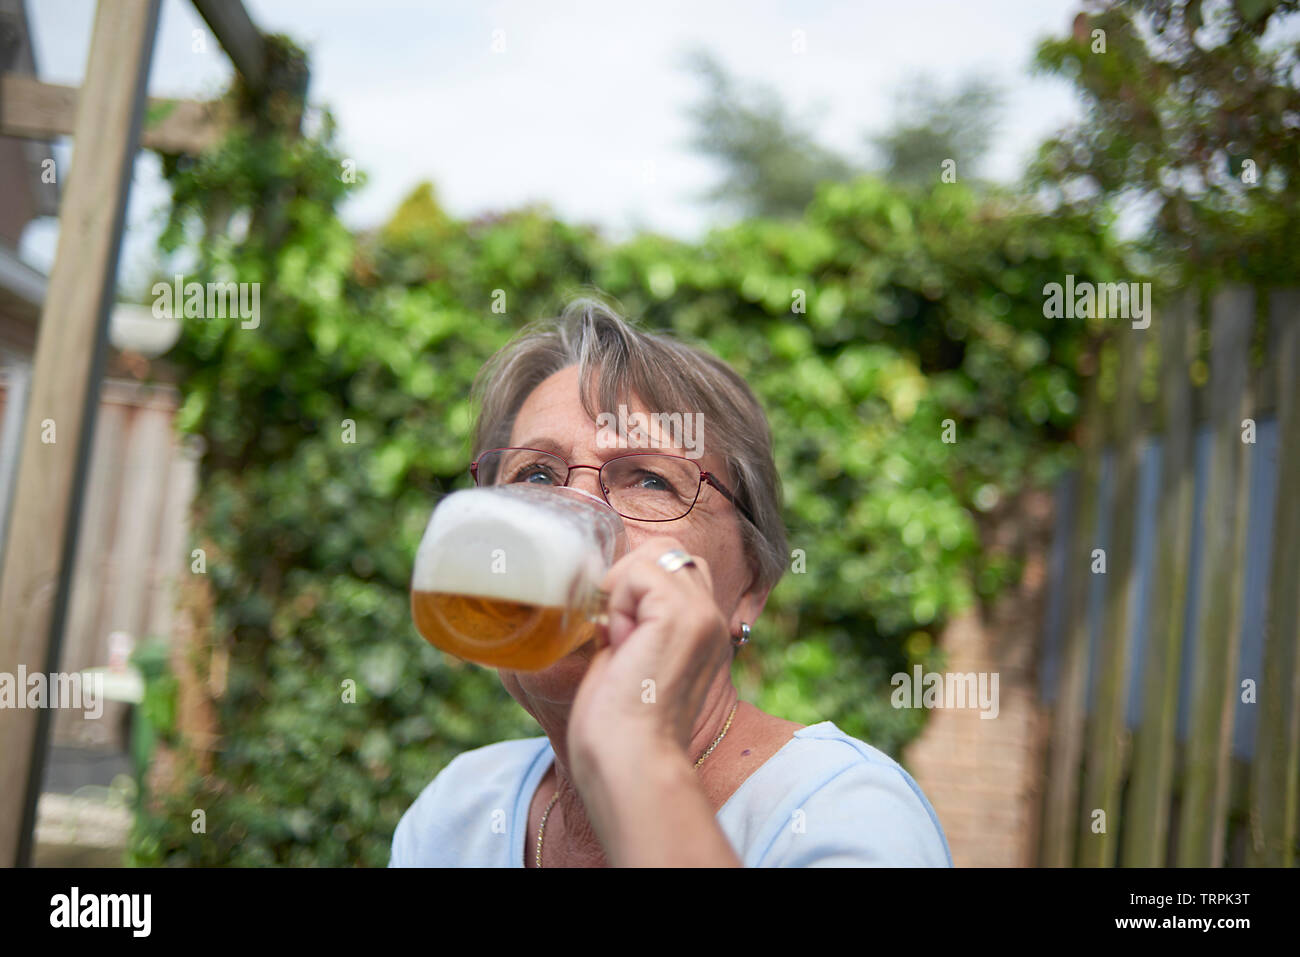 Happy and healthy elderly woman drinking a large glass of beer sitting outside in bright summer sunshine - Stock Image